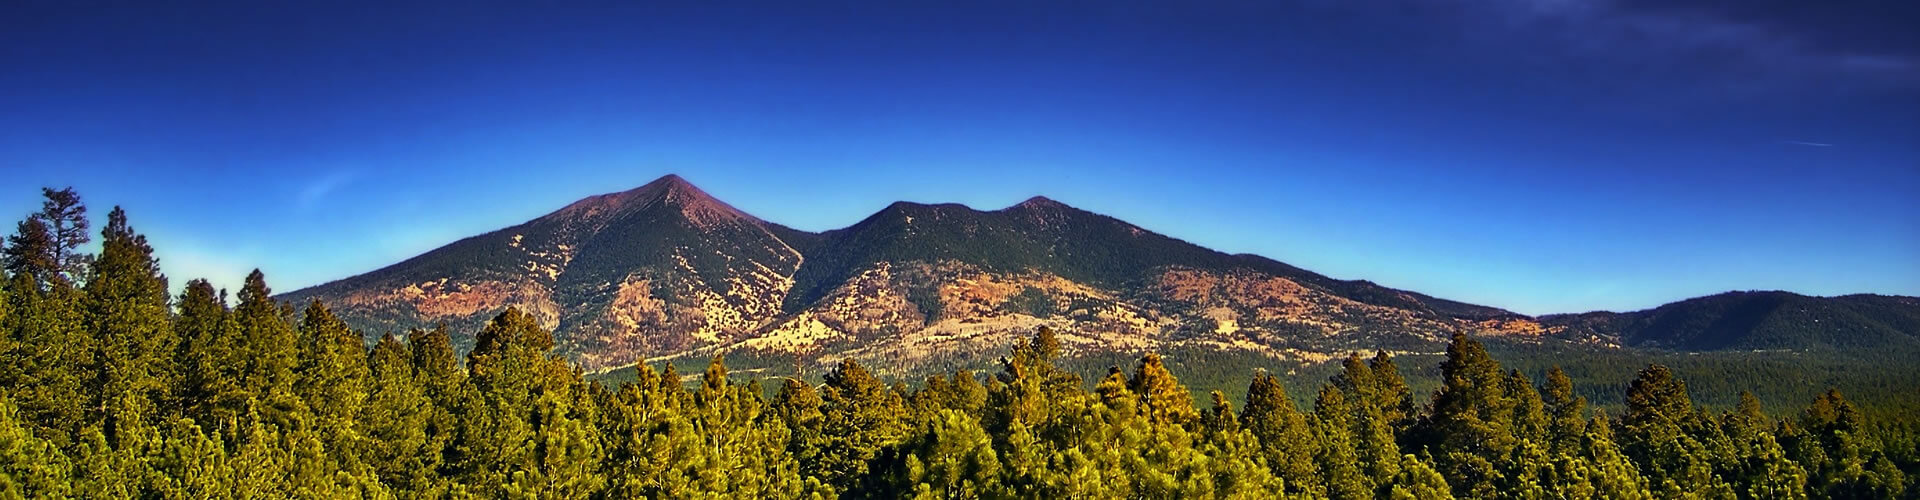 Flagstaff Mountain Community